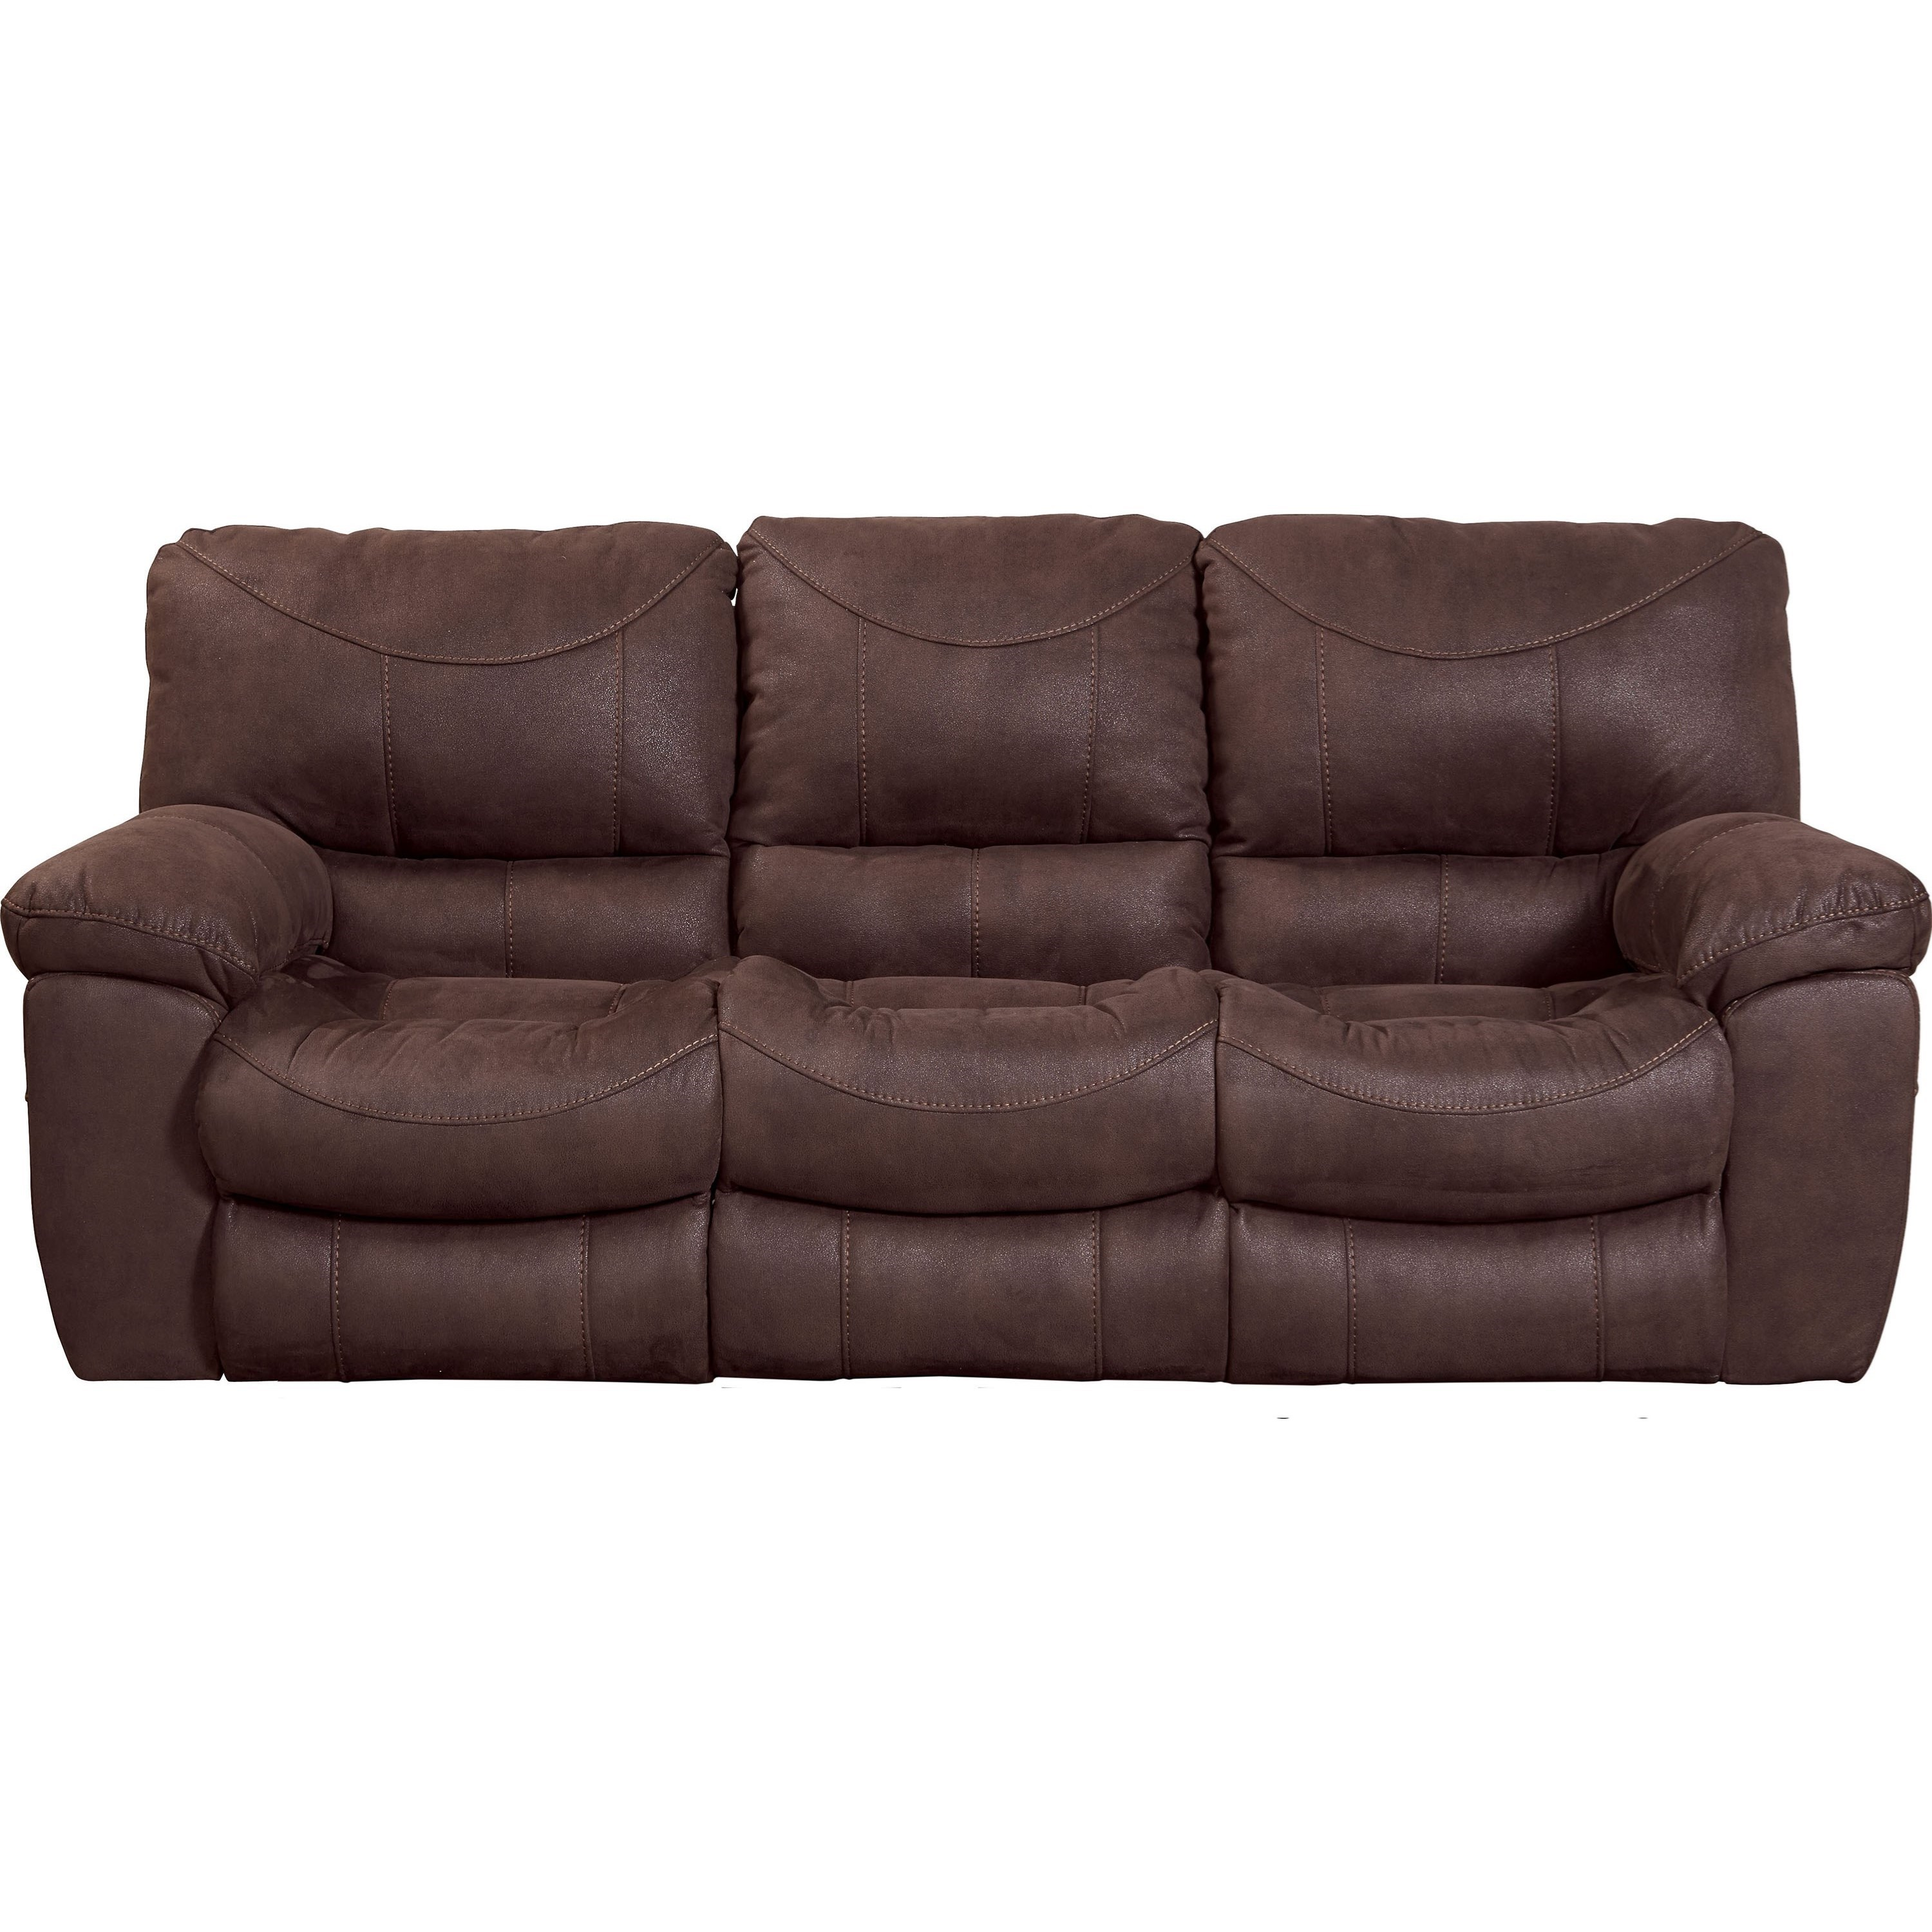 catnapper sofas and loveseats 4 piece sectional sofa terrance 1581 reclining lapeer furniture